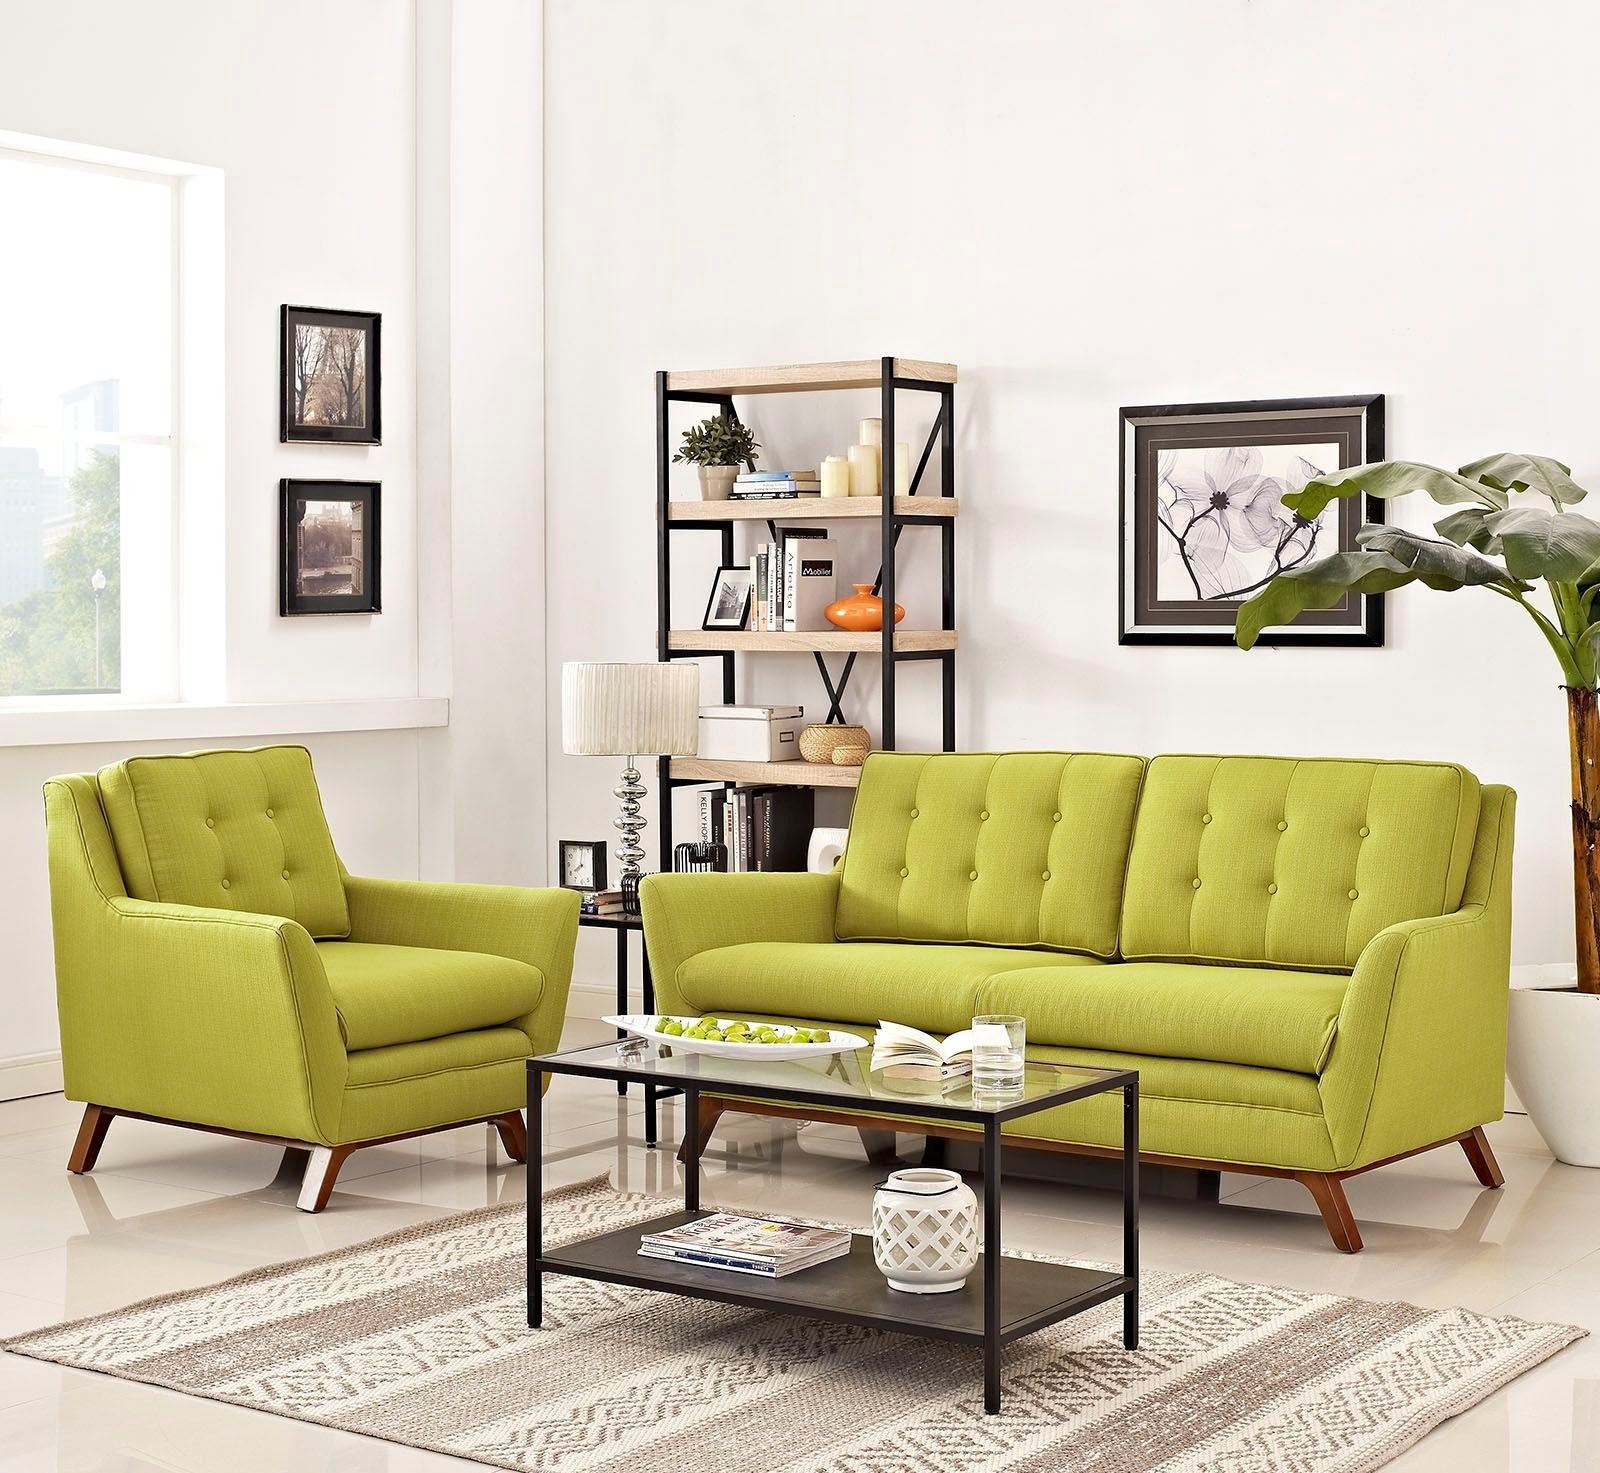 Eei 2432 Whe Set Beguile Wheatgrass 2 Piece Upholstered Living Room Set From Renegade Coleman